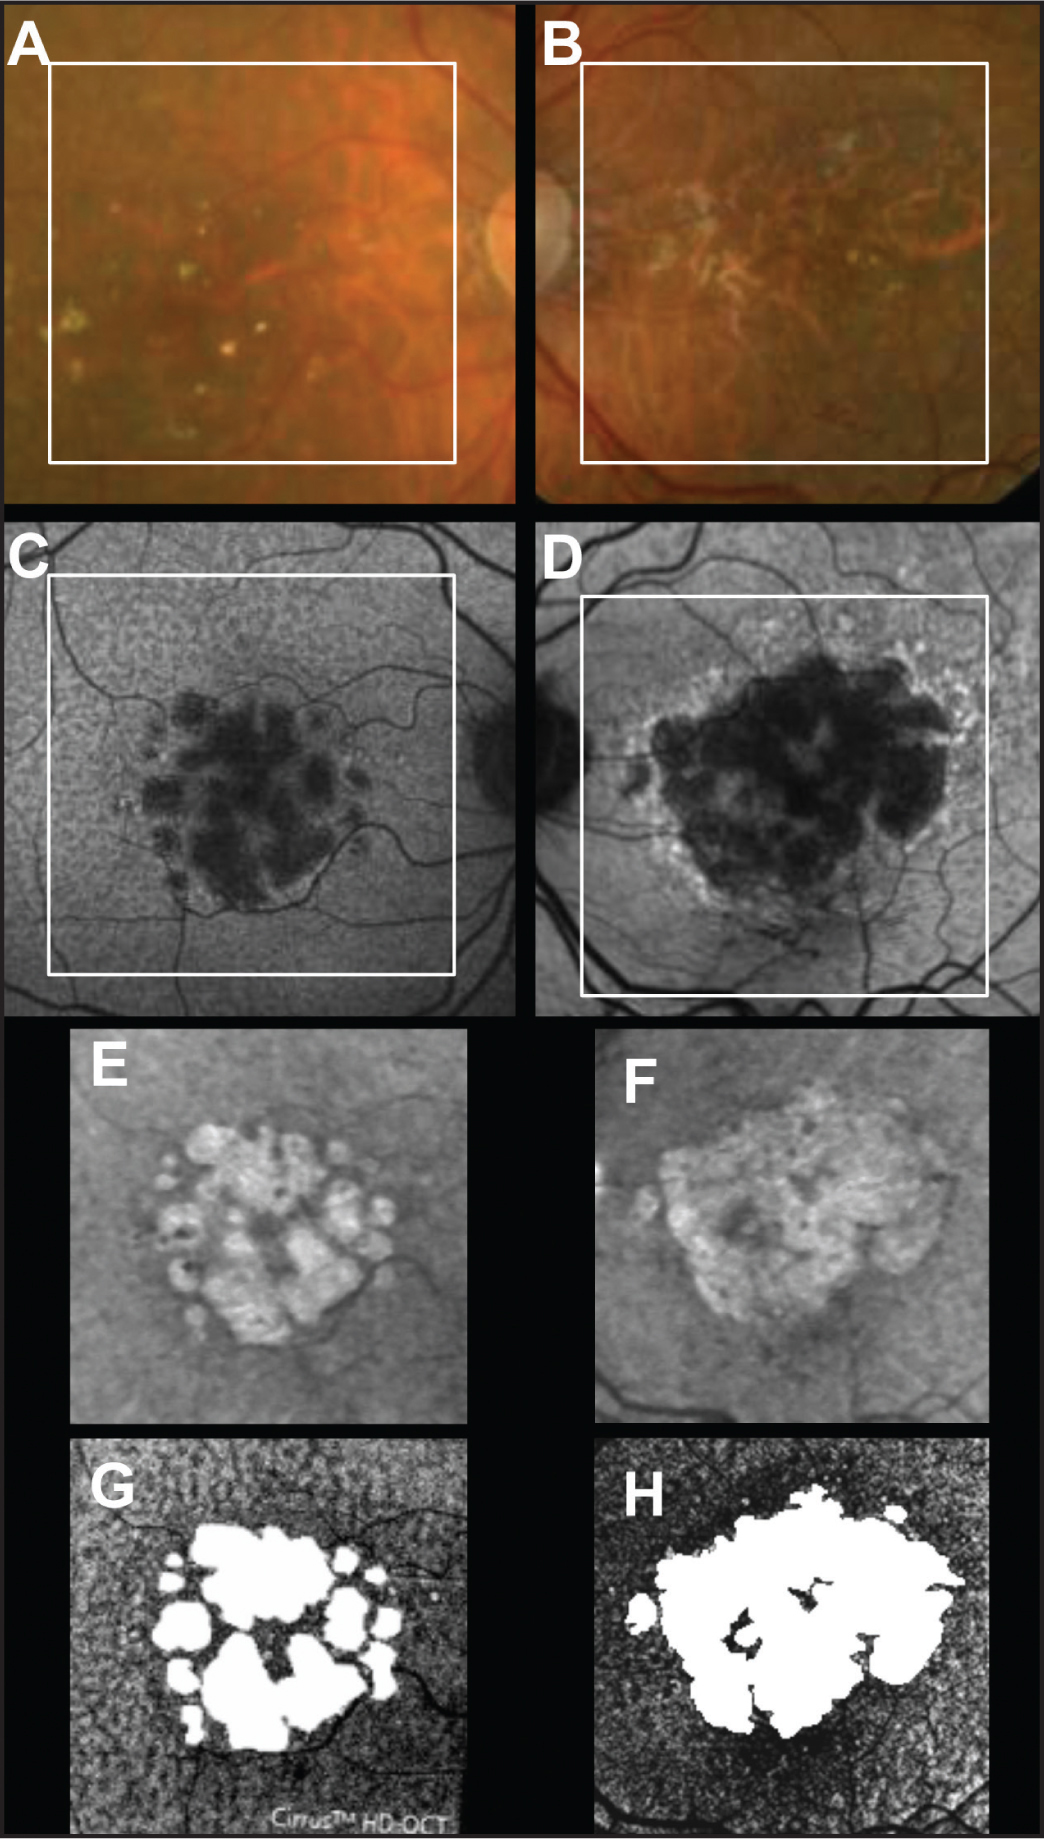 Baseline images of GA from both eyes of an 83-year-old woman with nonexudative age-related macular degeneration and diffuse disruption of the outer retina. (A,B) Color fundus images with a superimposed square depicting the area scanned with spectral-domain optical coherence tomography (SD-OCT) imaging. (C,D) Fundus autofluores-cence images with a superimposed square depicting the area scanned with SD-OCT. (E,F) Sub-RPE slabs. (G,H) En face images derived from the outer retinal slab described in Figure 1 with the superimposed images of GA (white) derived from the corresponding sub-RPE slabs at baseline.